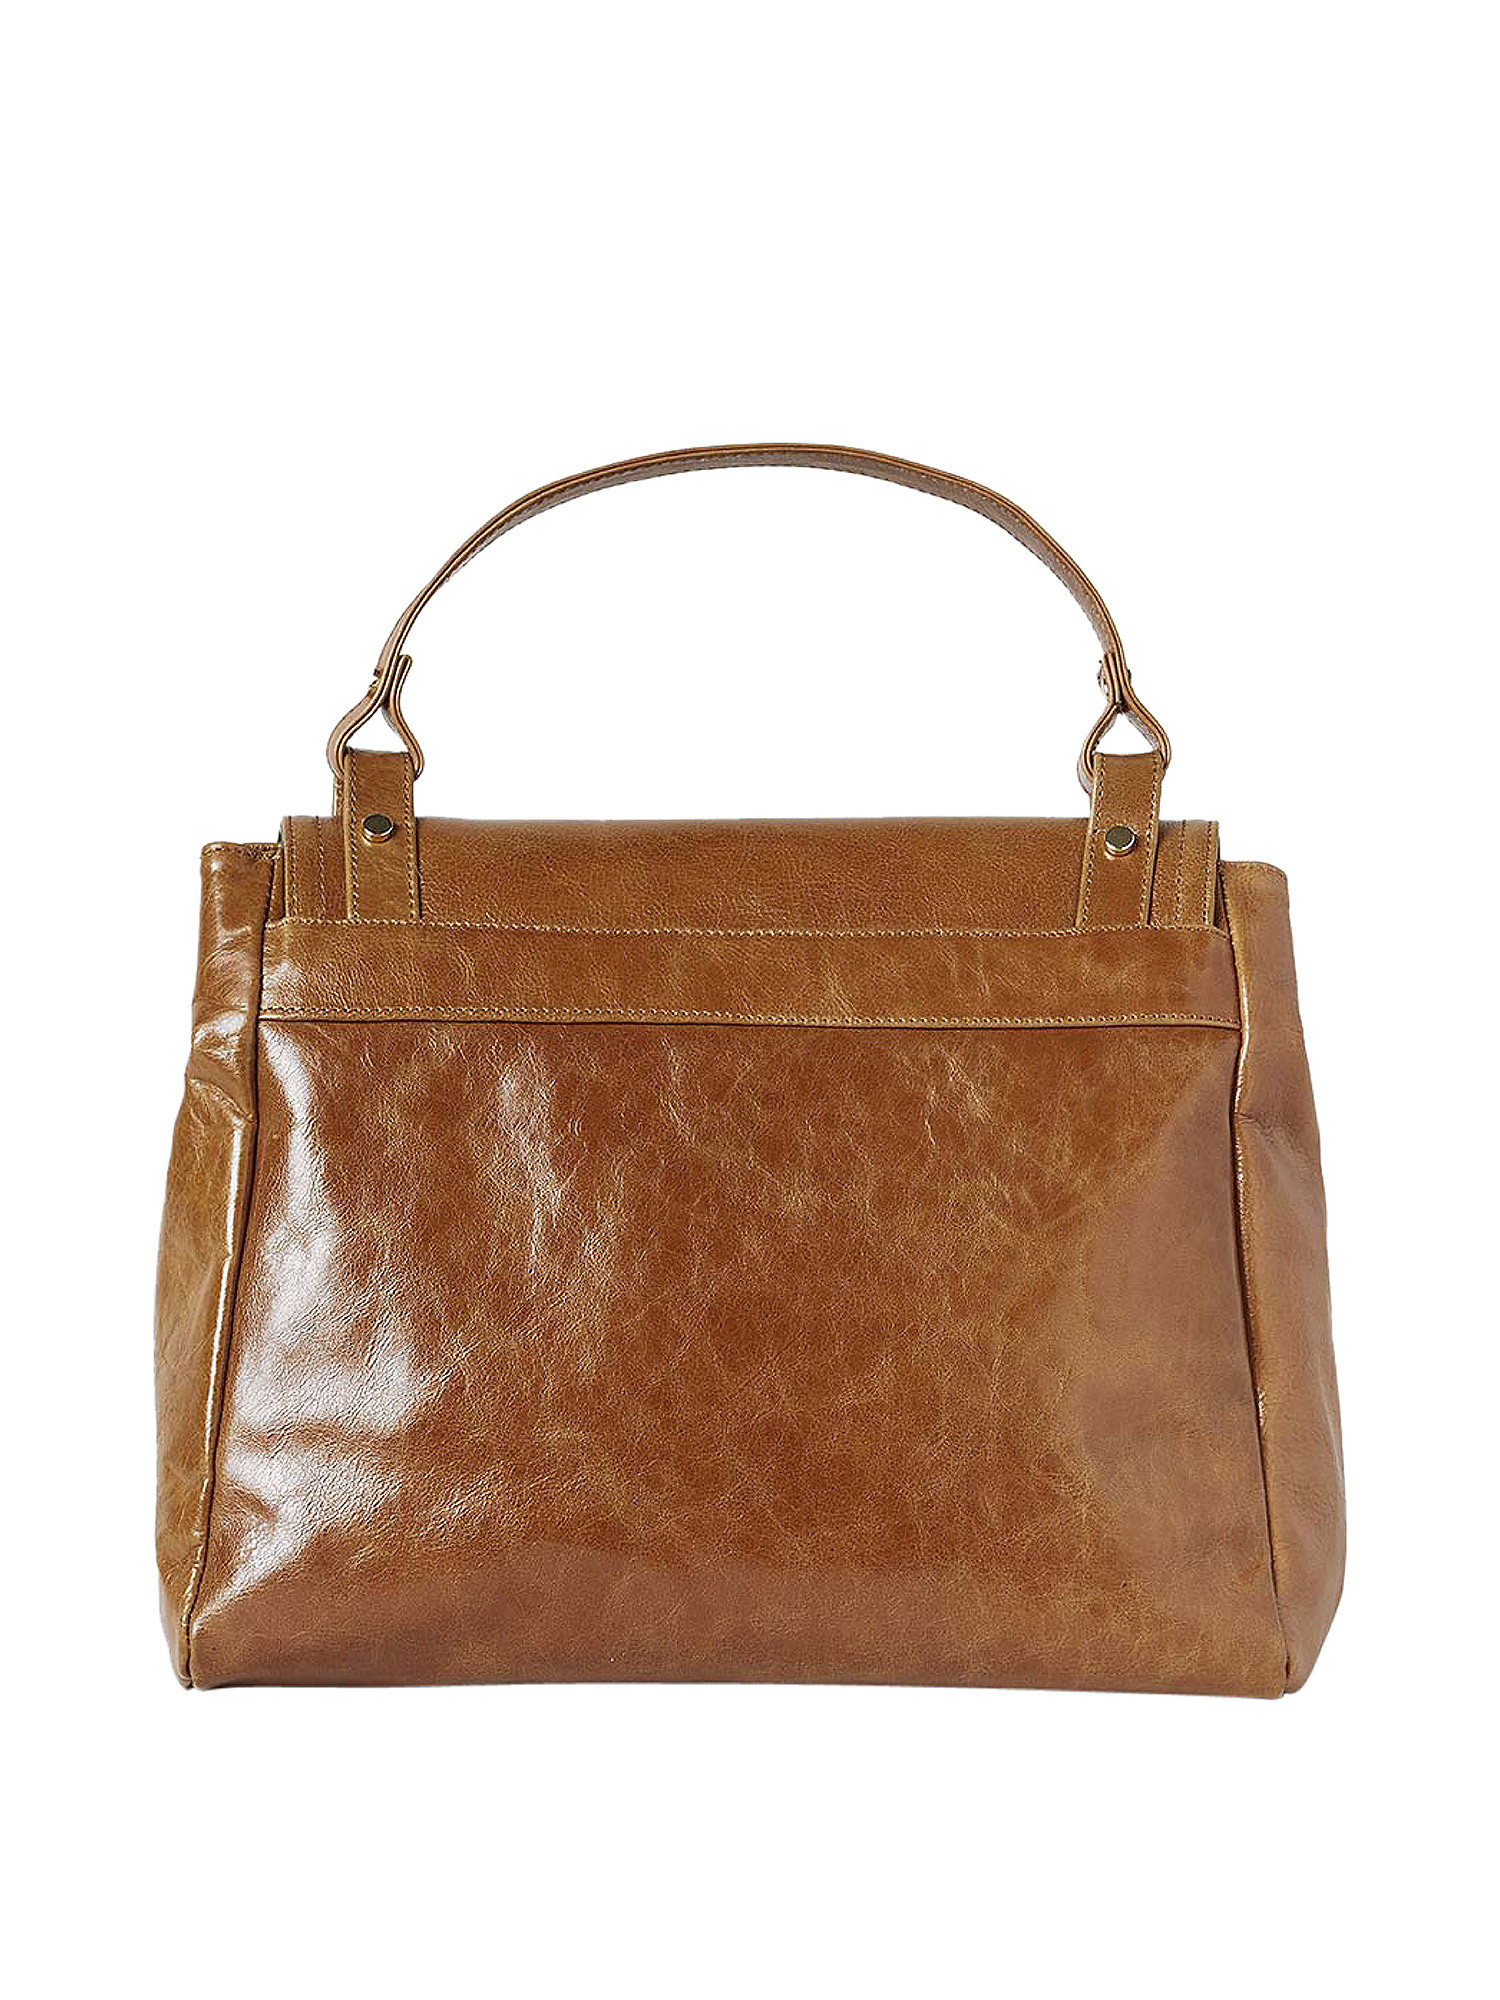 Borsa Flore in pelle, Marrone, large image number 1